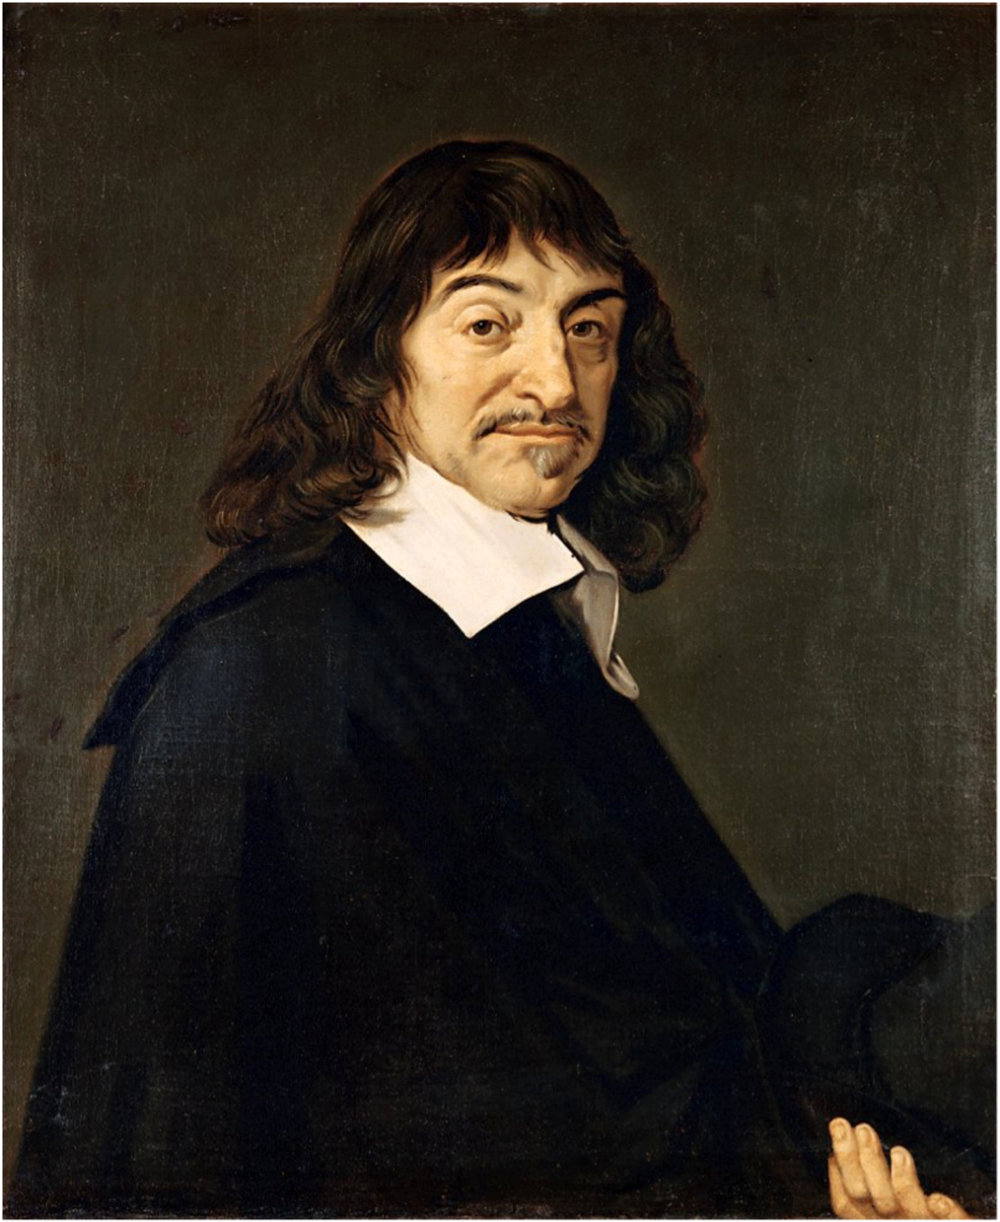 Portrait of René Descartes (1596-1650) circa 1649-1700. Oil on canvas. Height: 77.5 cm (30.5 in). Width: 68.5 cm (27 in).   Louvre Museum. INV. number 1317. 18th century: collection of the dukes of Orléans. 1785: acquired by Louis XVI de France (1754-1793), France.   Contributing photographer: André Hawala 1997.   PD-Art